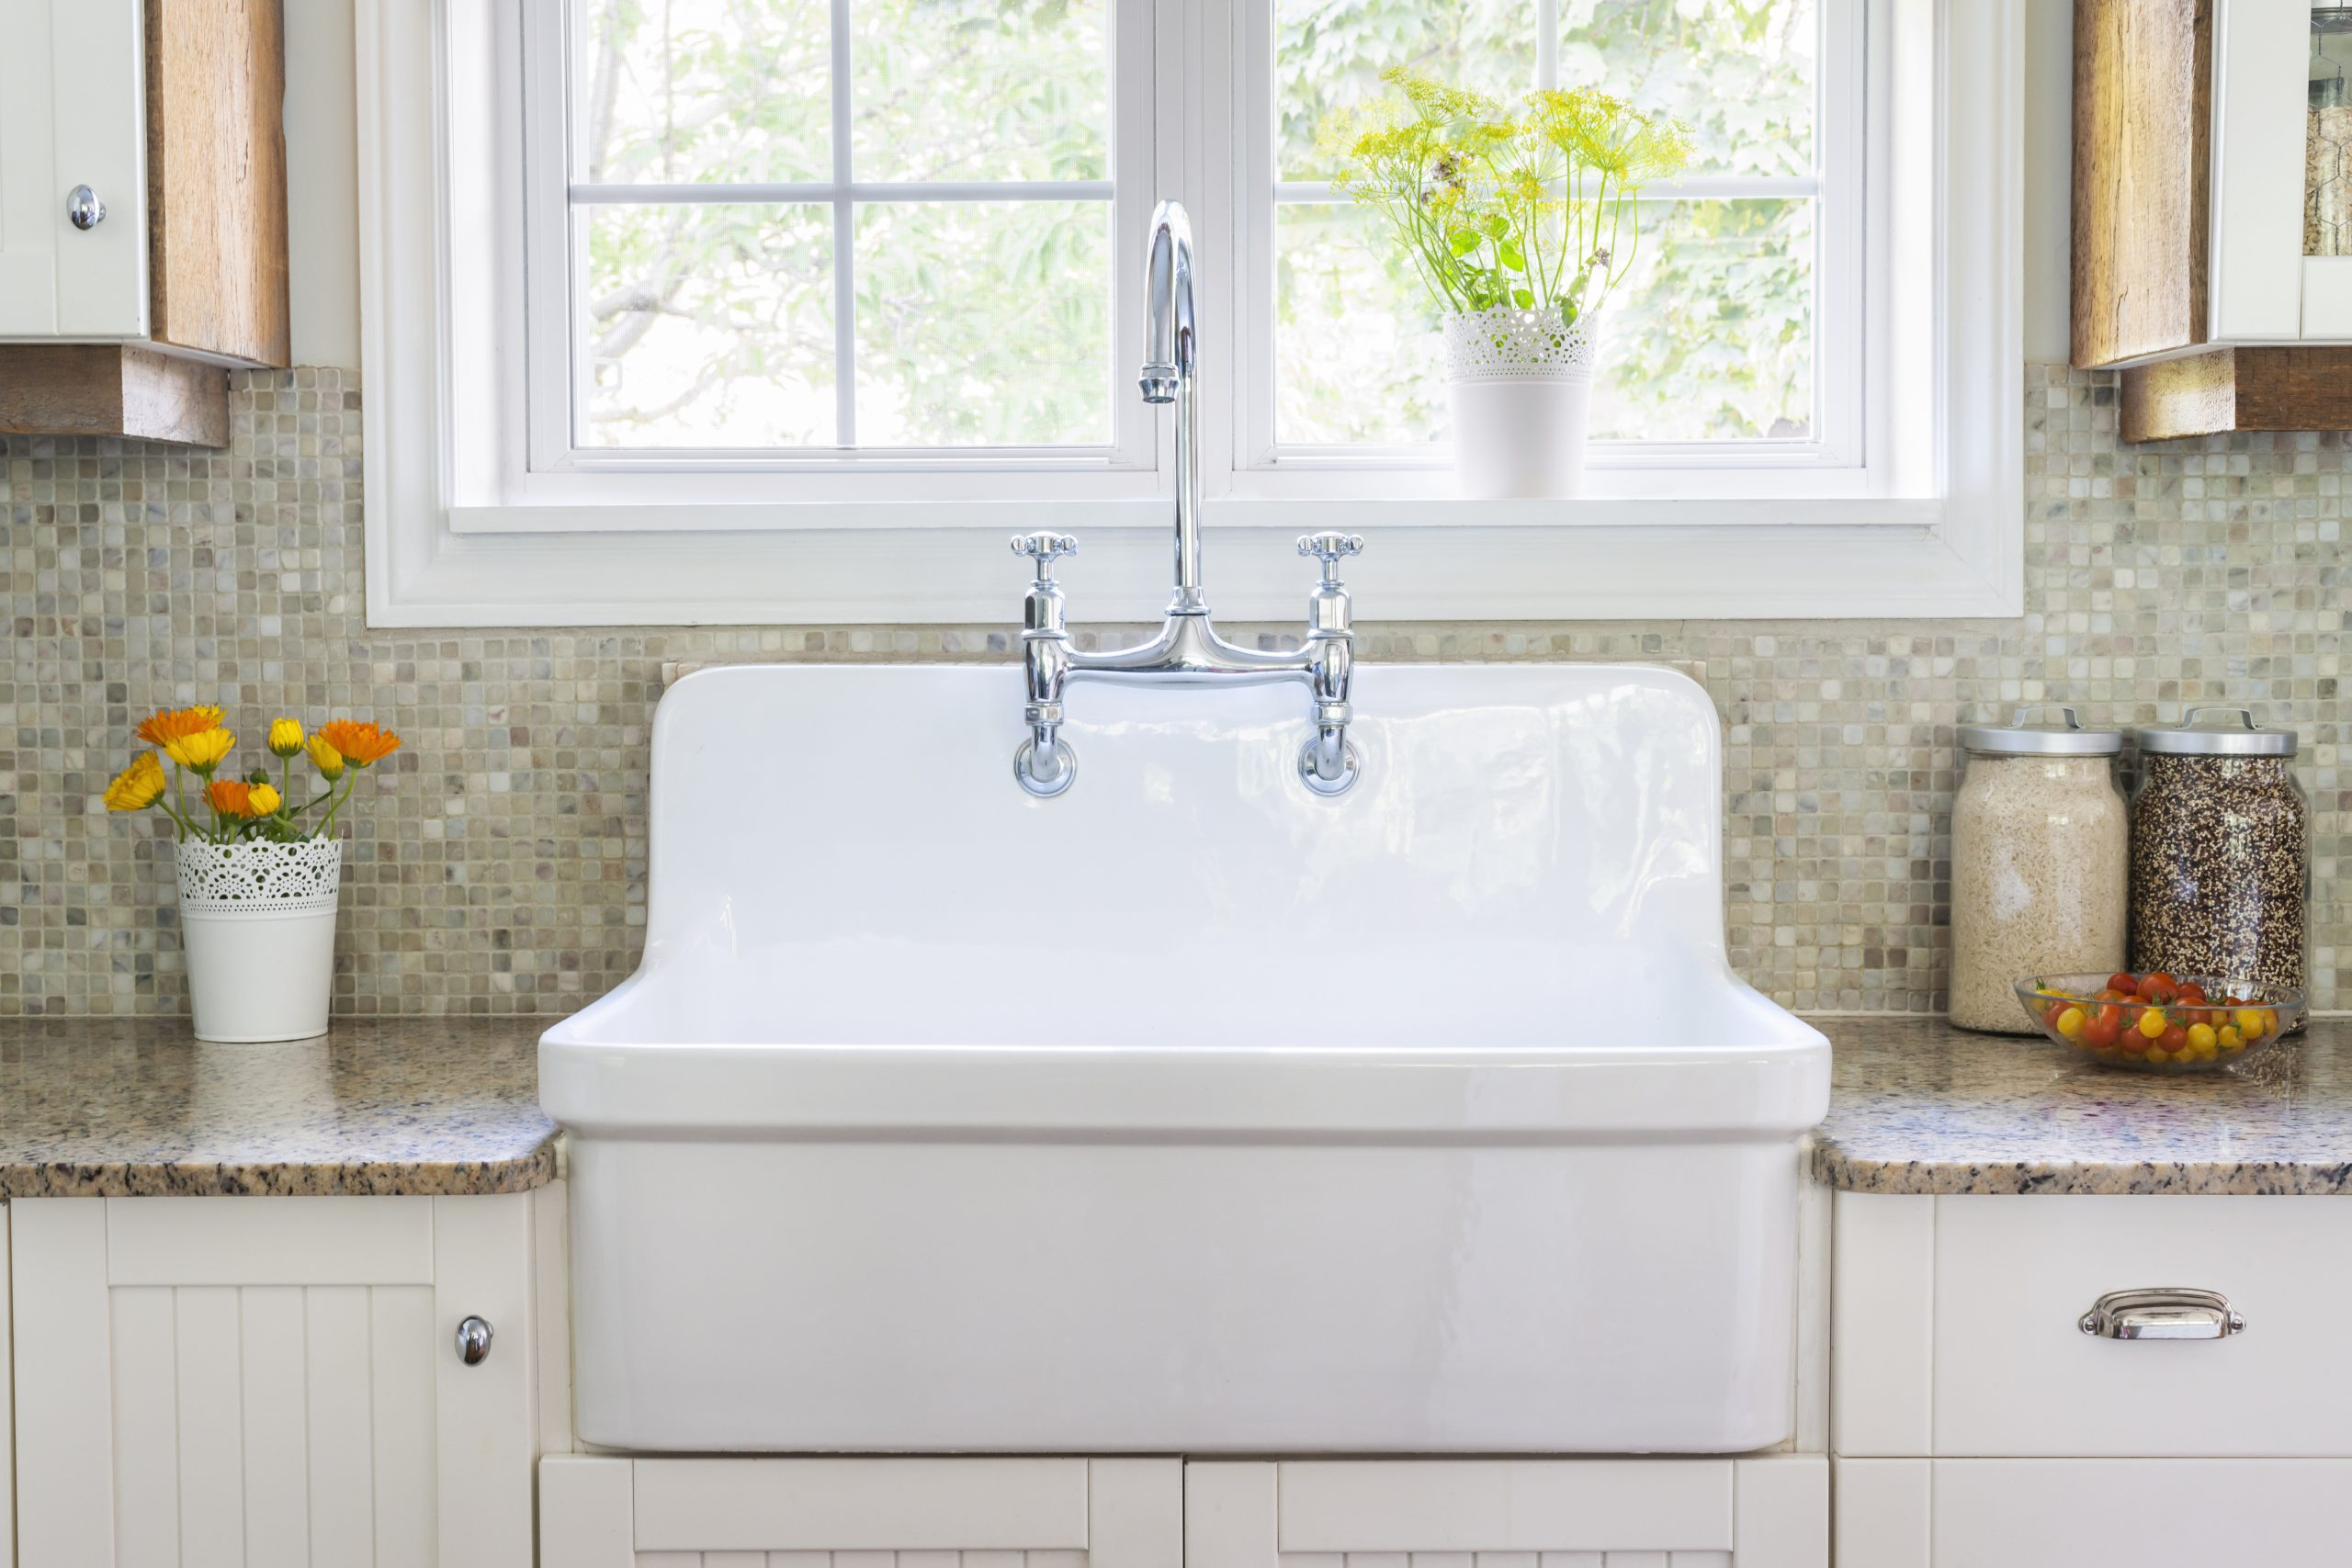 How to clean the kitchen sink